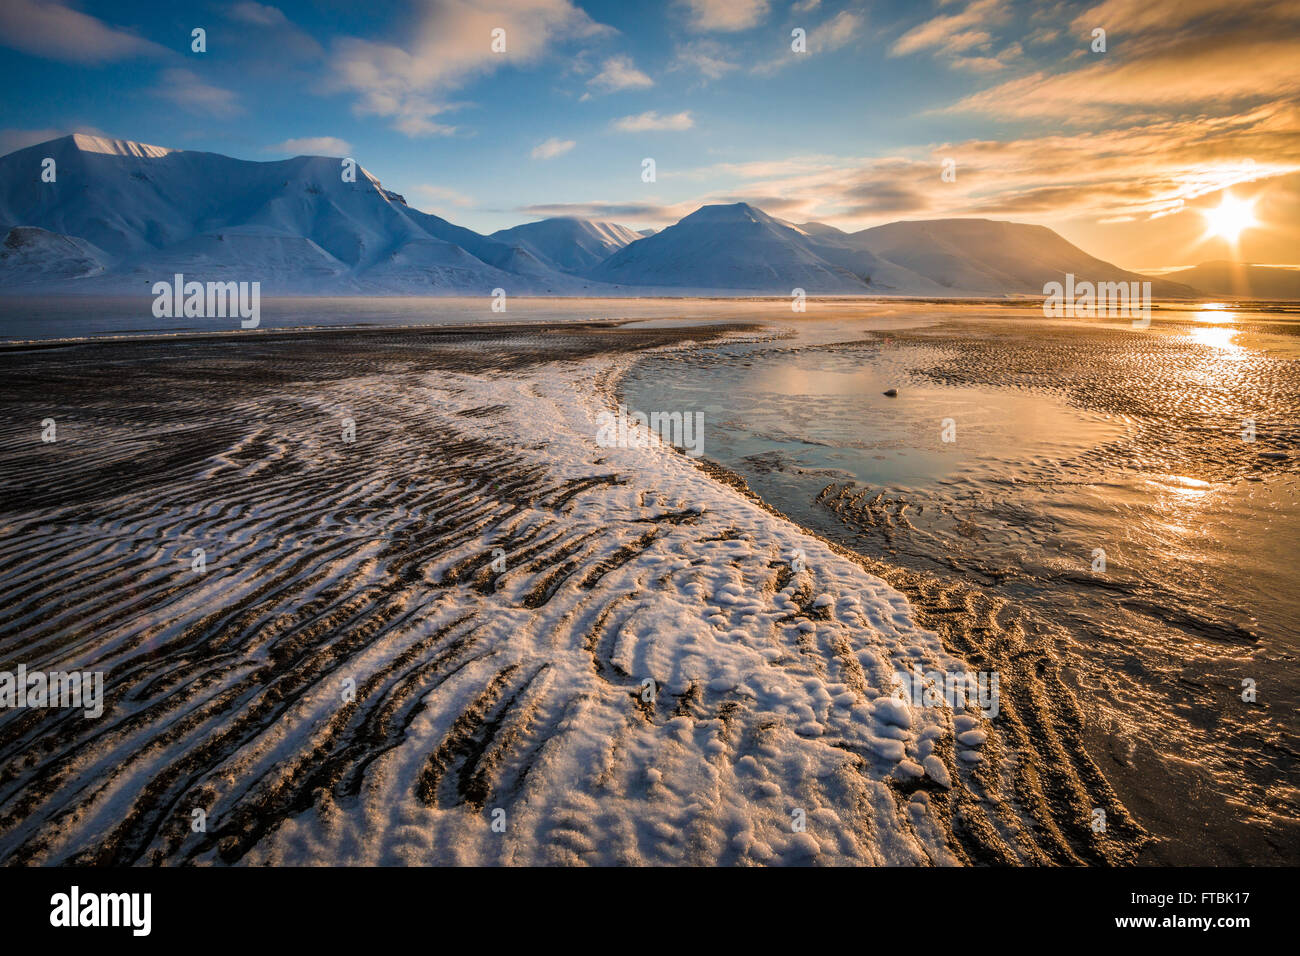 Sunrise ice formations on Sjøskrenten beach with views to Hiorthfjellet, Longyearbyen, Spitsbergen, Svalbard. - Stock Image